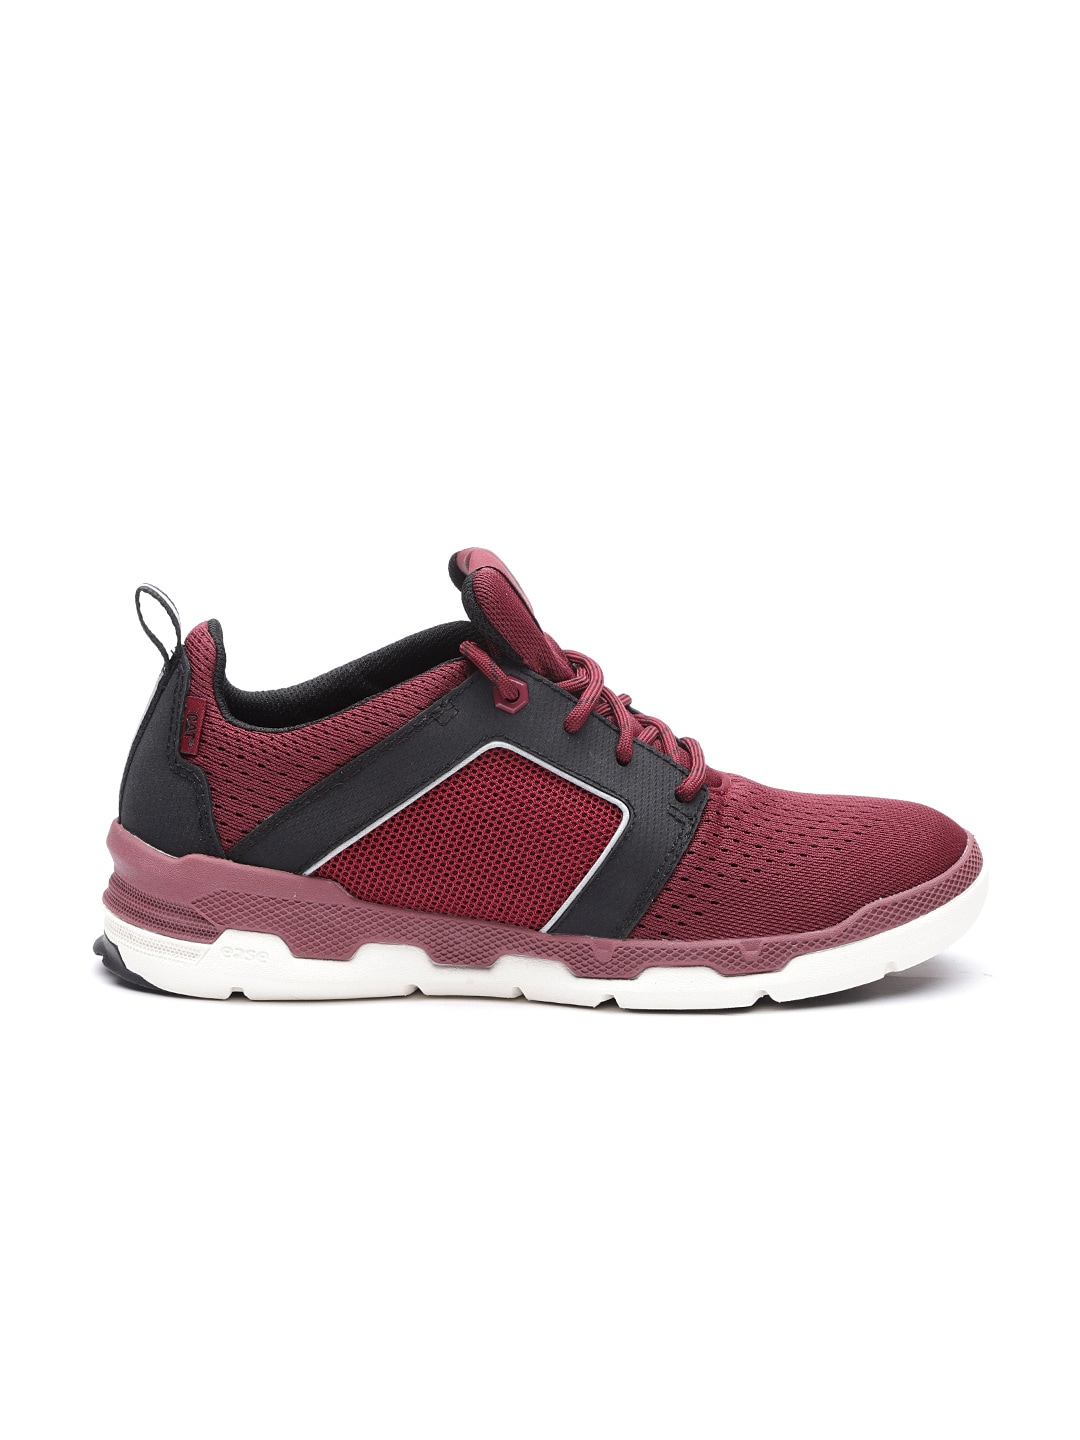 132f6715423f CAT Shoes - Buy CAT Shoes For Men at Best Price Online